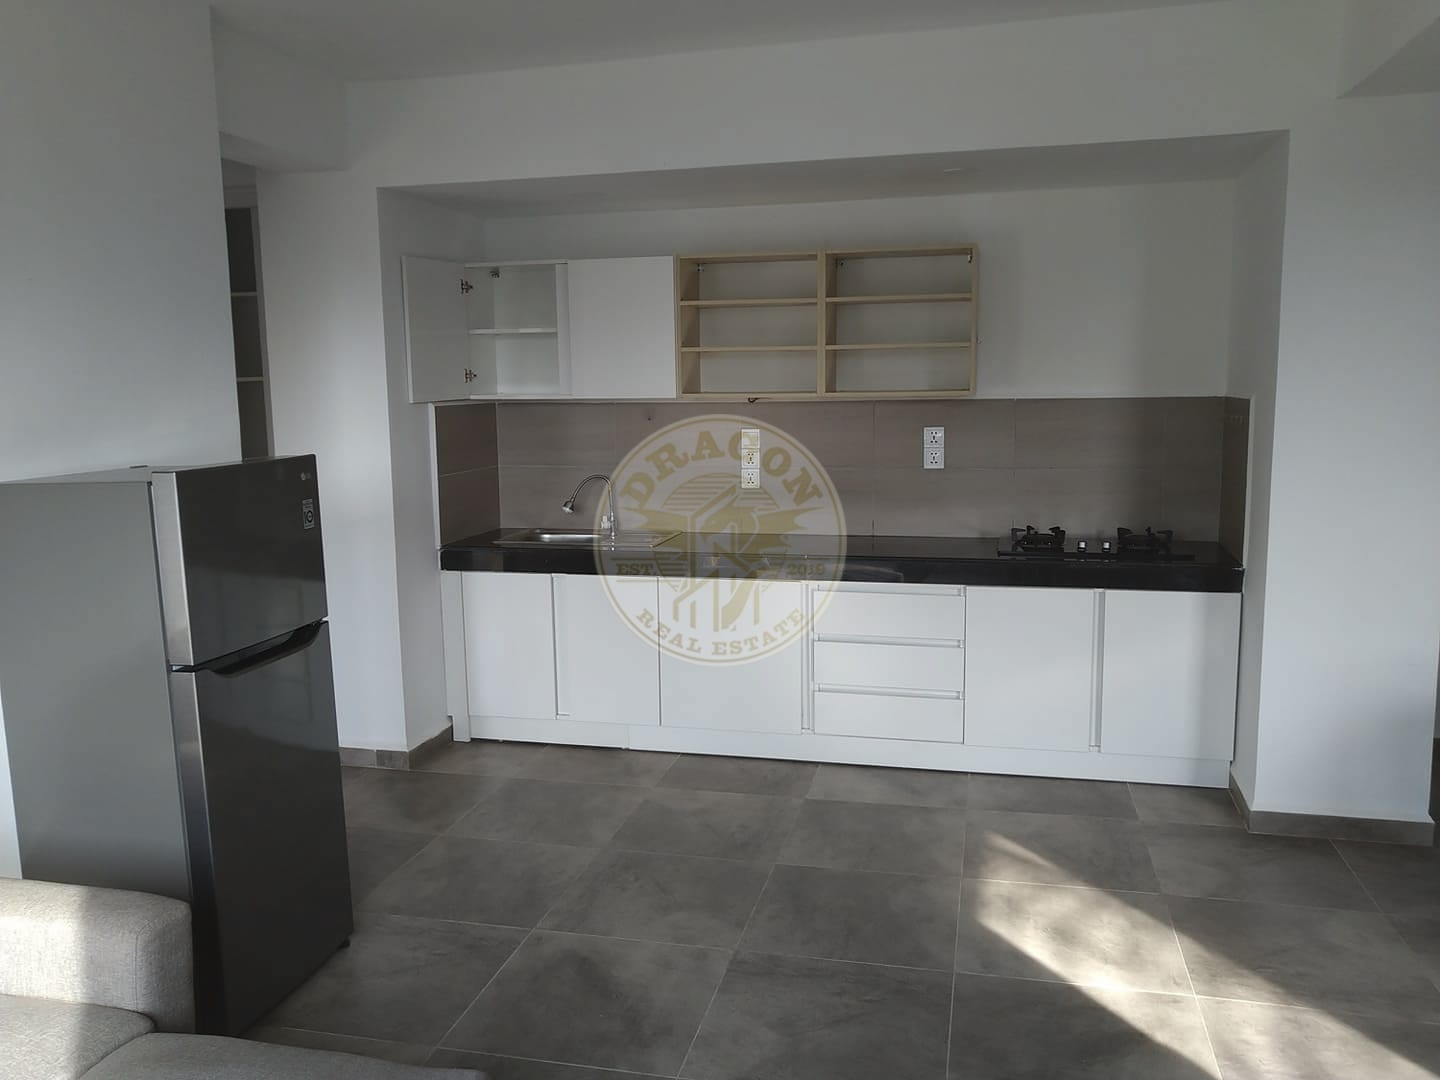 Service with a Lifestyle Apartment for Rent. Sihanoukville Cambodia Property Sale